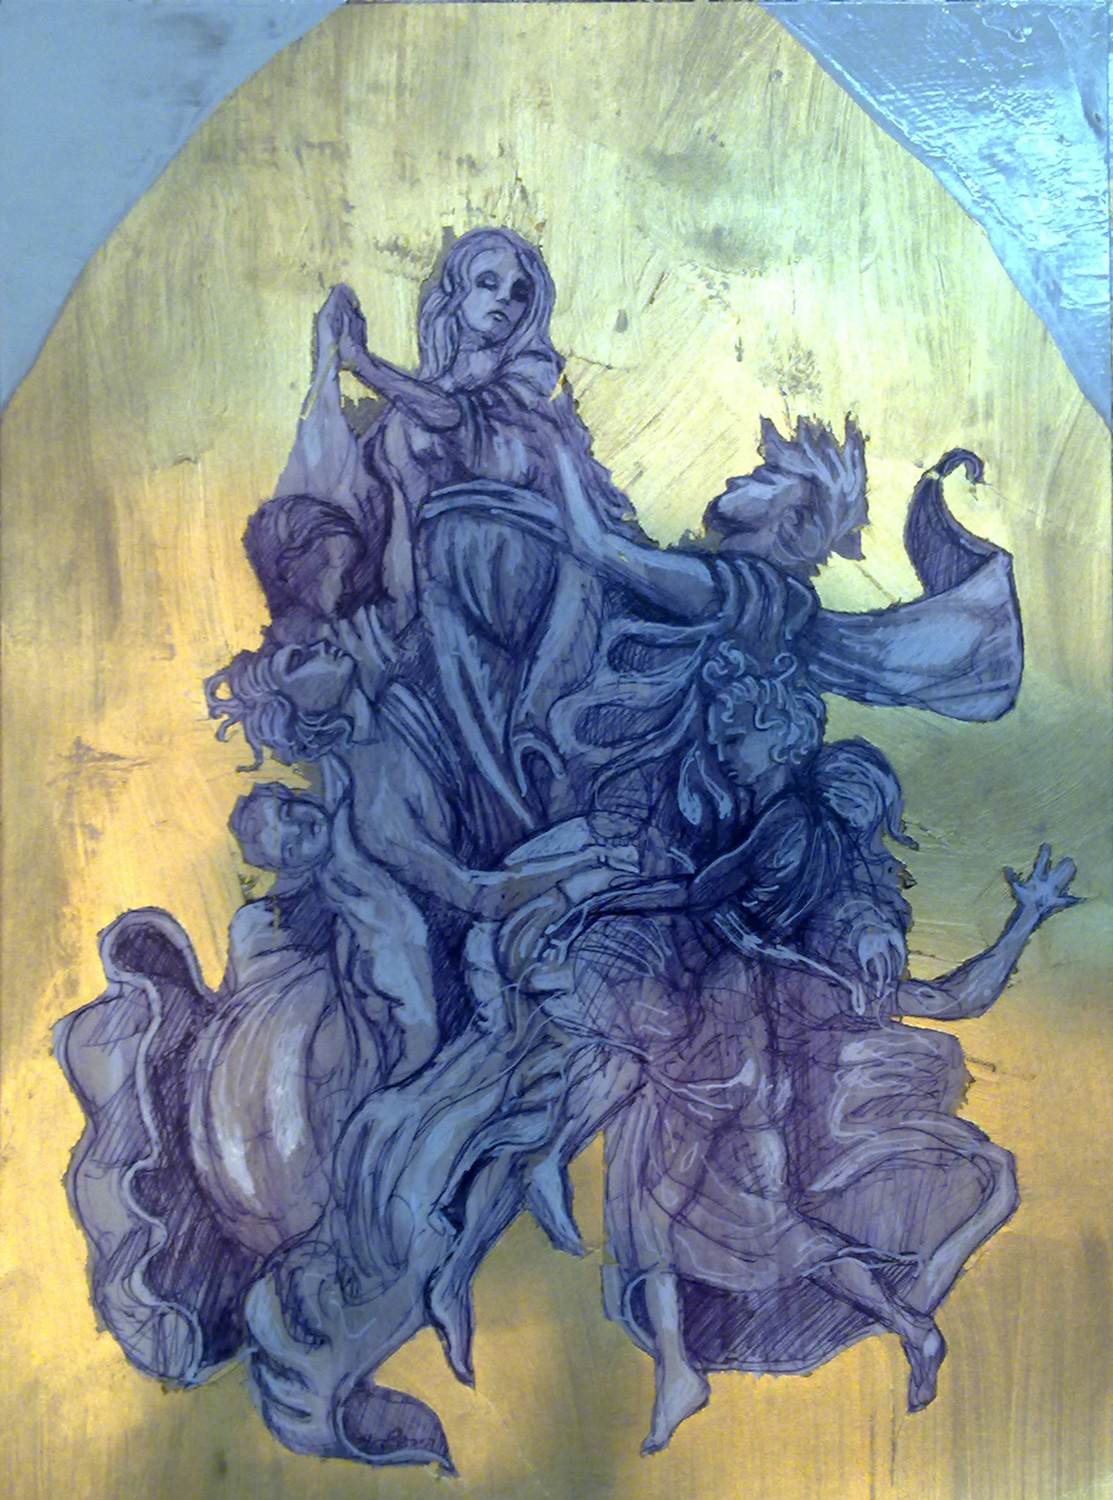 Assumption (after Poussin), Ballpoint and oil on paper, 25X50 cm, 2010